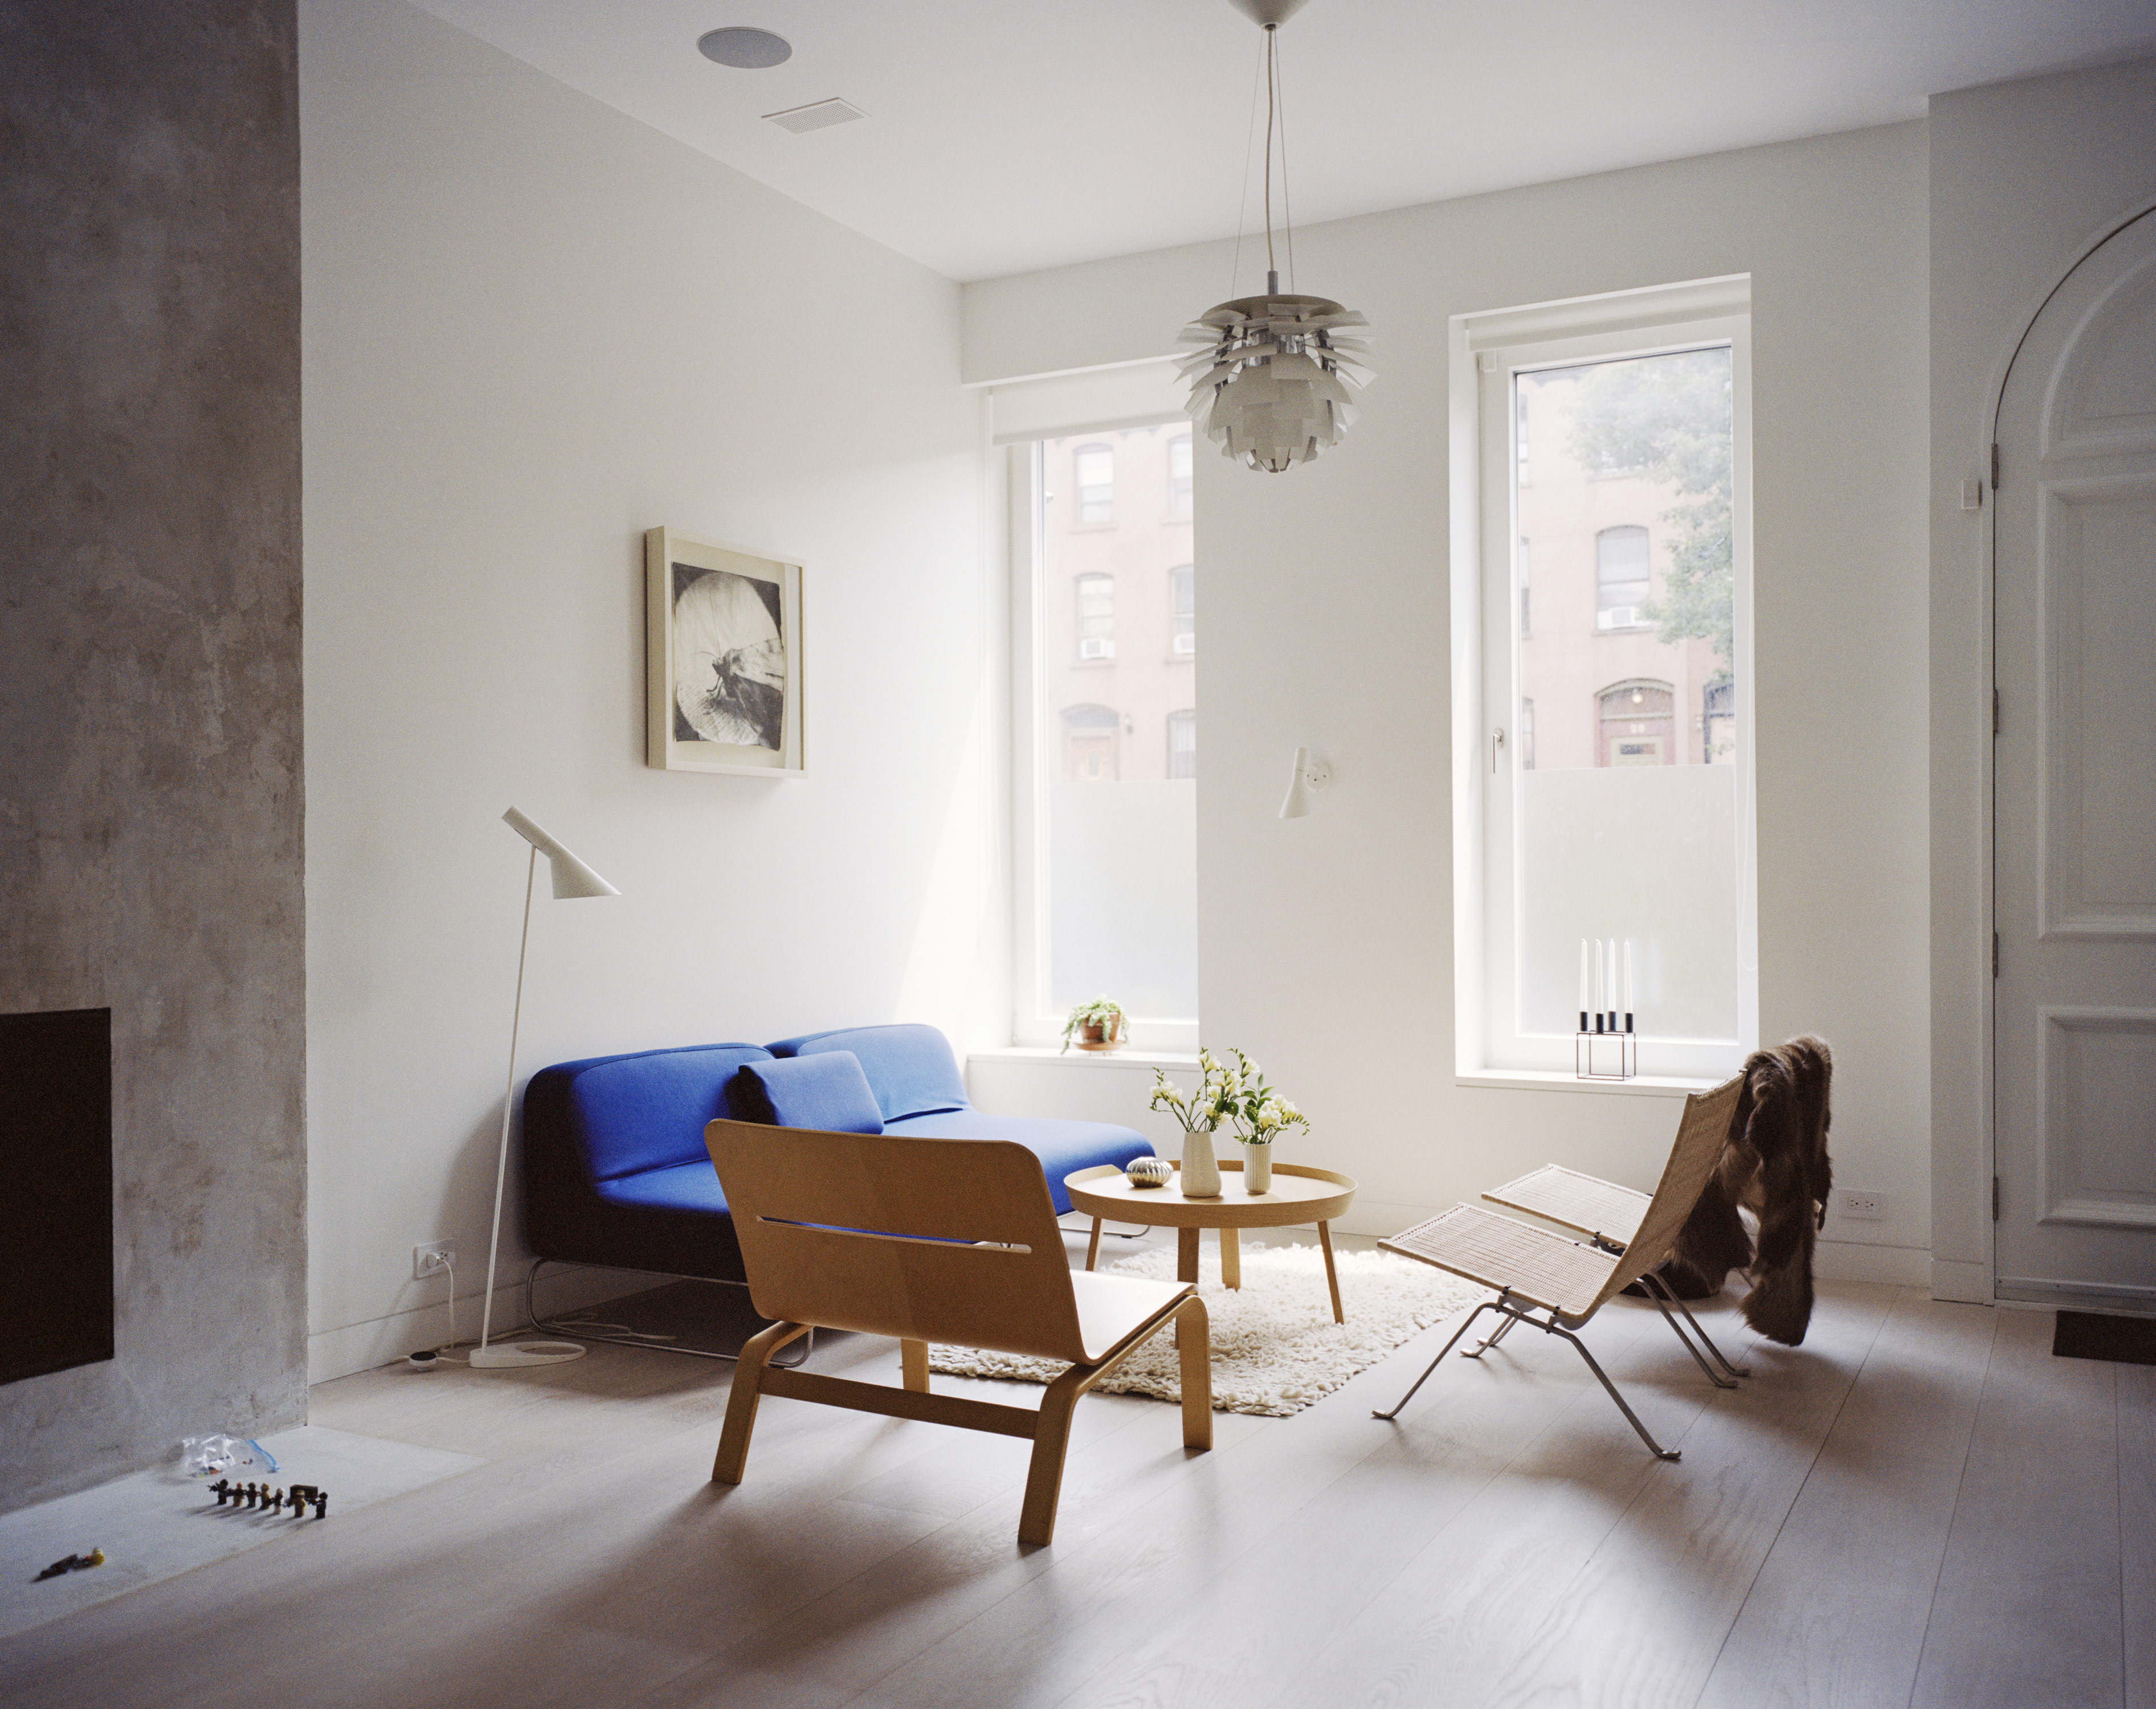 The living room is furnished with designs from Fritz Hansen, Muuto, Louis Poulsen, and Living Divani.